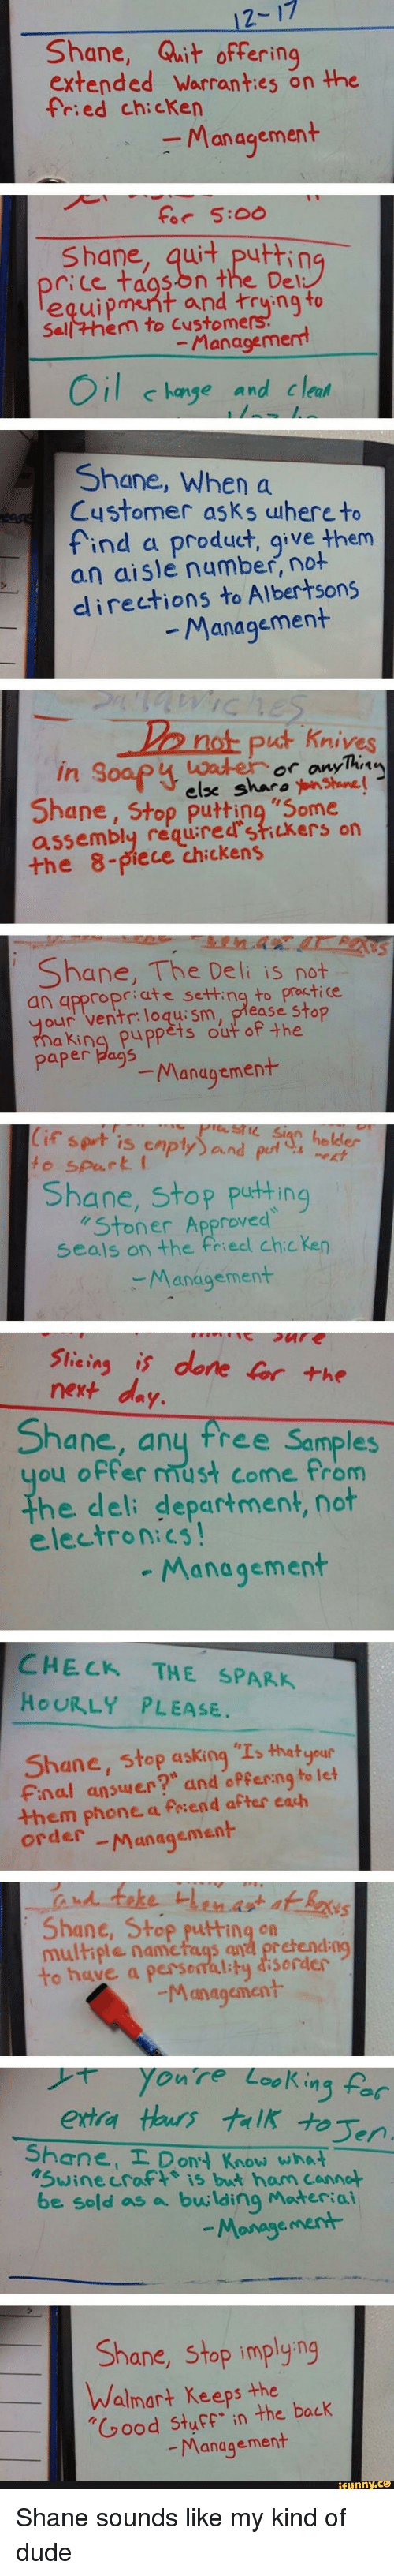 """Dude, Phone, and Reddit: 2  17  Shane, Quit offering  extended Warrant:es on the  fried chicken  Management  Shane, quit puttin  rice taason the De  equipment and trying to  Sell them to Custom  -Manageme  il c  hange and clea  Sh  nane, When a  ustomer asks uhere to  find a product, give them  an aisle number, no+  an aisle nm them  dlirections to Albertsons  Management  put Krives  Shane, Stop putting '5ome  assembly requred'stickers on  the 8-piece chickens  Shane, The Deli is not  an qppropriate setting to proctice  our ventr:loqu:sm, piease stop  aking puppěts out of the  paper bags  Management  to spart  Shane, stop puting  Stoner Approved  seals on the friedl chcken  Managemen  Stlicin is done or the  hane, any tree Samples  u offer mmust come from  the deli department, not  electronicS  Management  CHECK THE SPARK  HOURLY PLEASE.  Shane, stop asking """"I,that geup  Fnal ansuer?"""" and offerng to let  them phone a Priend after cash  order -Mangsment  Shane, Stop putting on  multiele namctaqs and pr etendng  to have a persemality disorder  Managenent  extra thurs trlkten  Shane, Don't Know wha  Swinecraft is but ham canne  be sold as a buwlding Materia  Monagement  Shane, Stop implying  Walnar+ Keeps the  Good StuF in the back  Manggeme"""